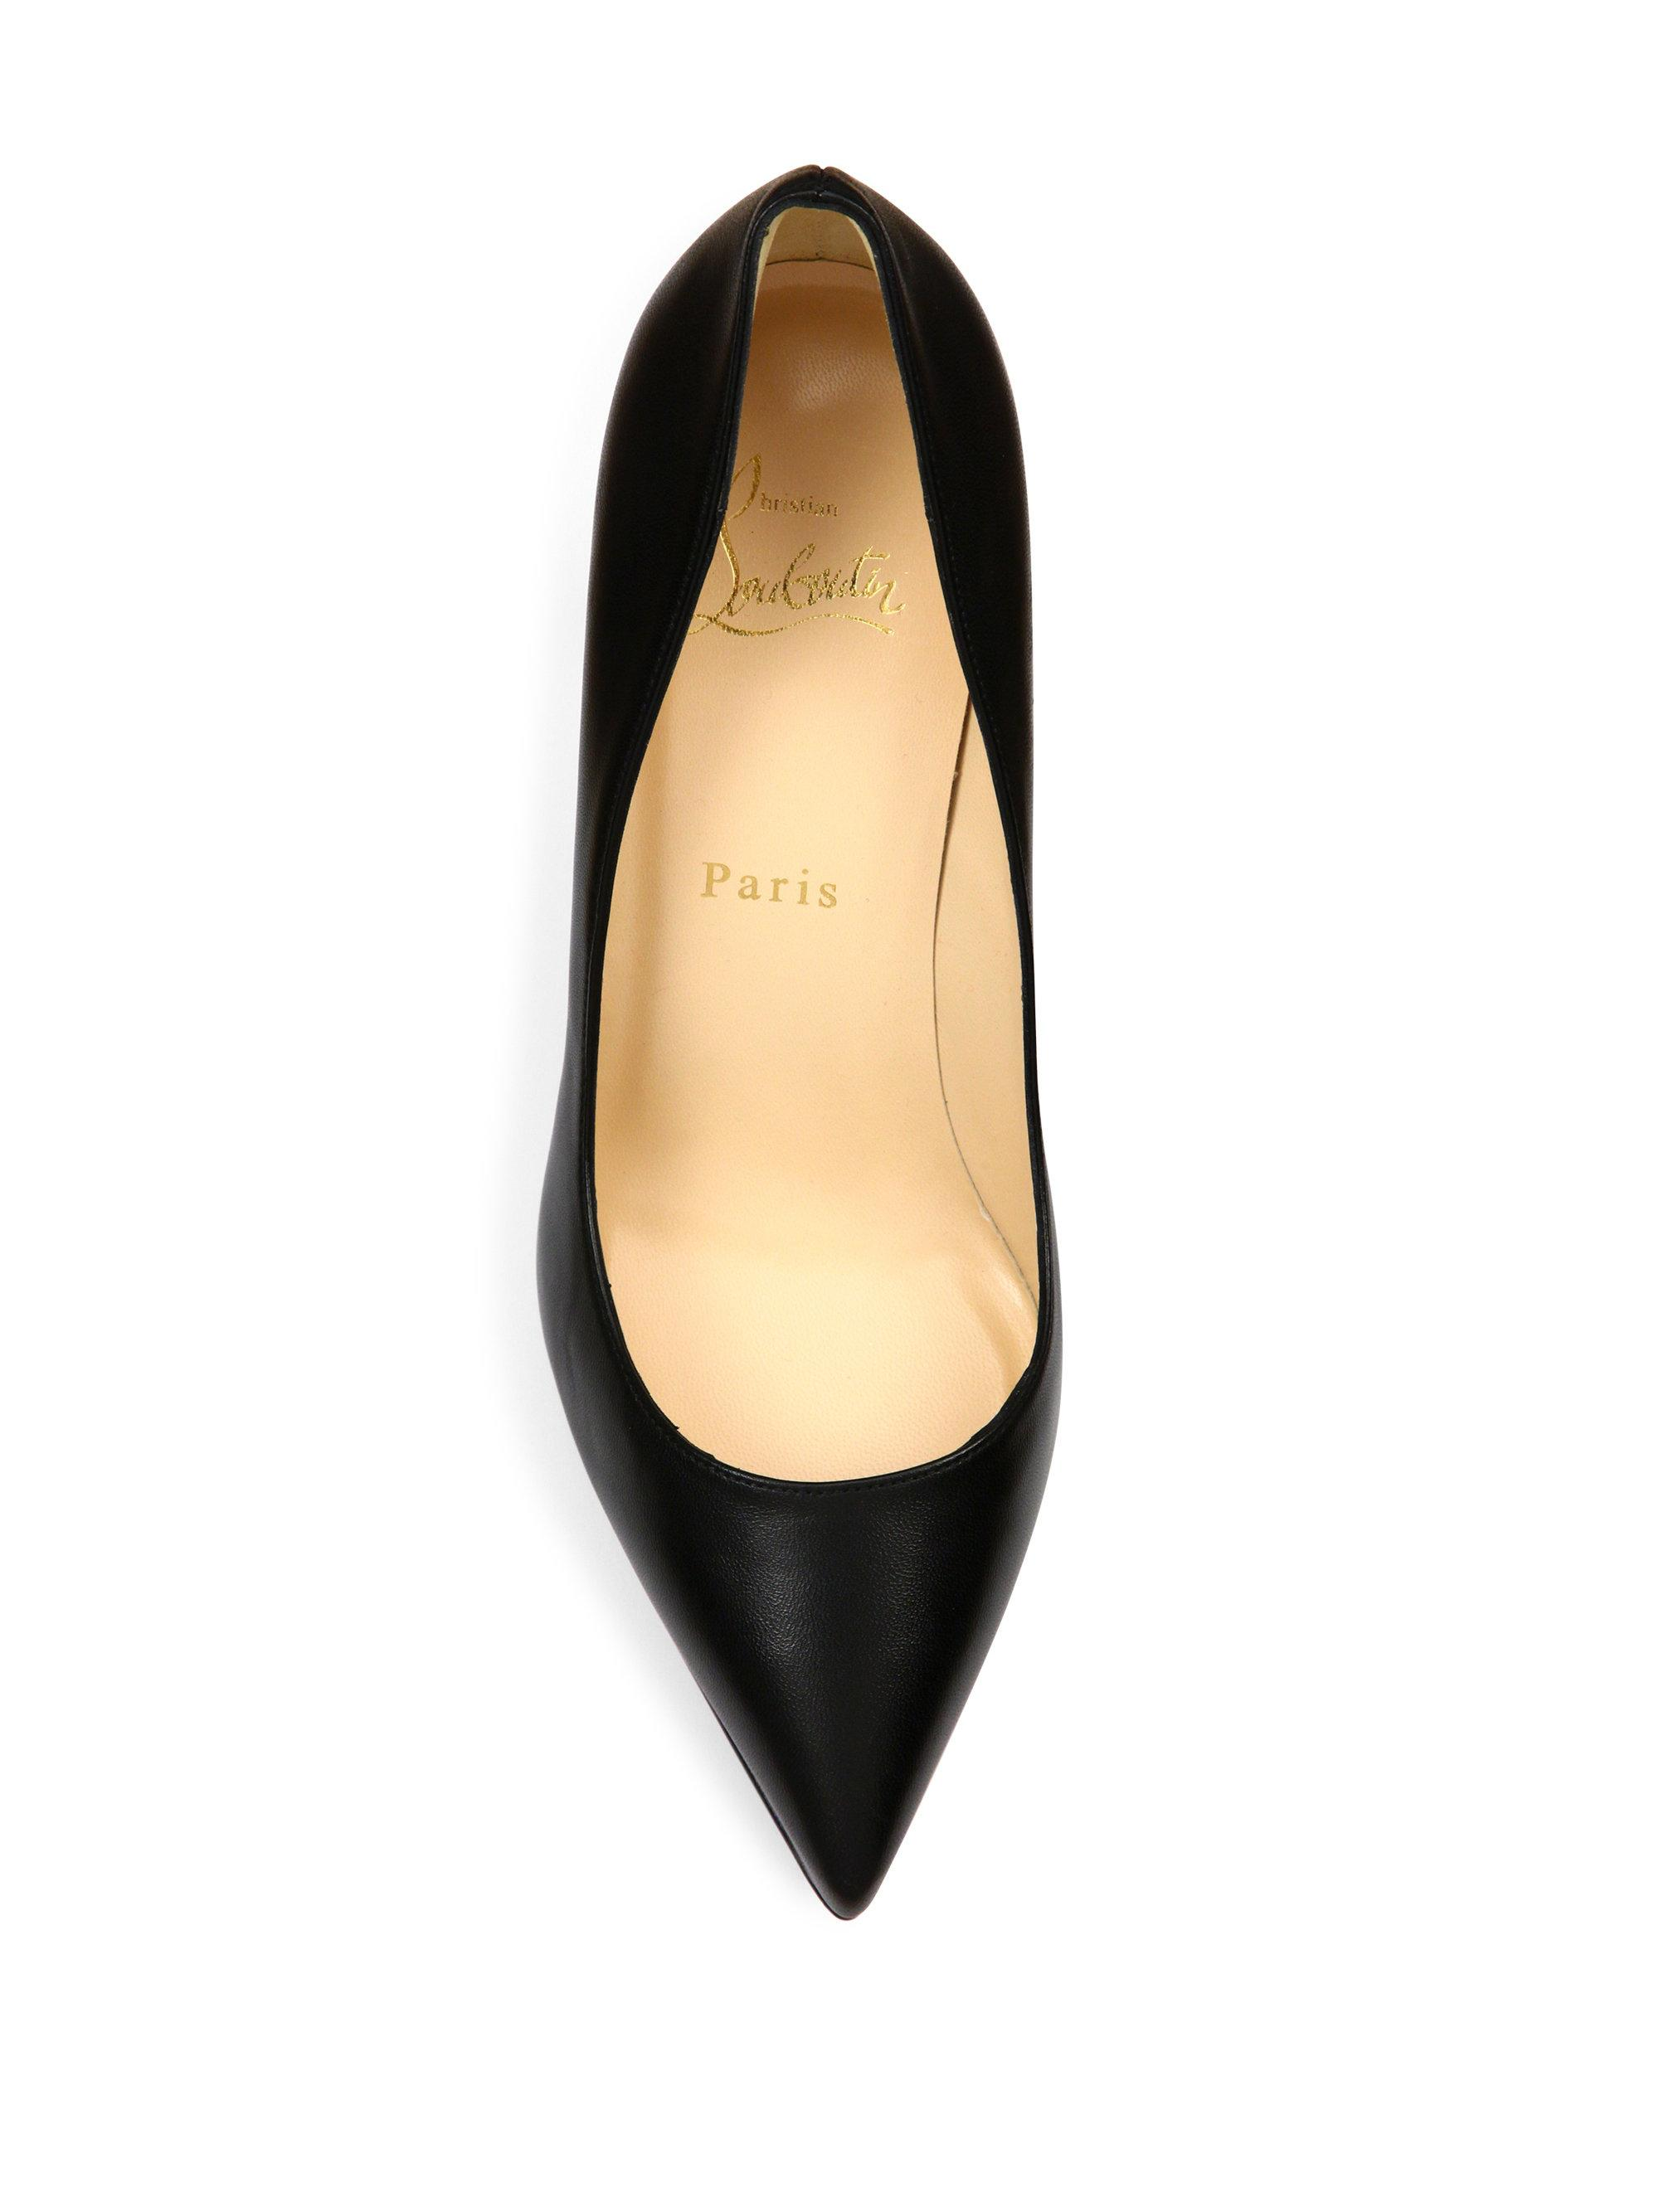 9f40ac1a5187 ... cheapest christian louboutin black pigalle plato 100 leather point toe  platform pumps lyst. view fullscreen ...